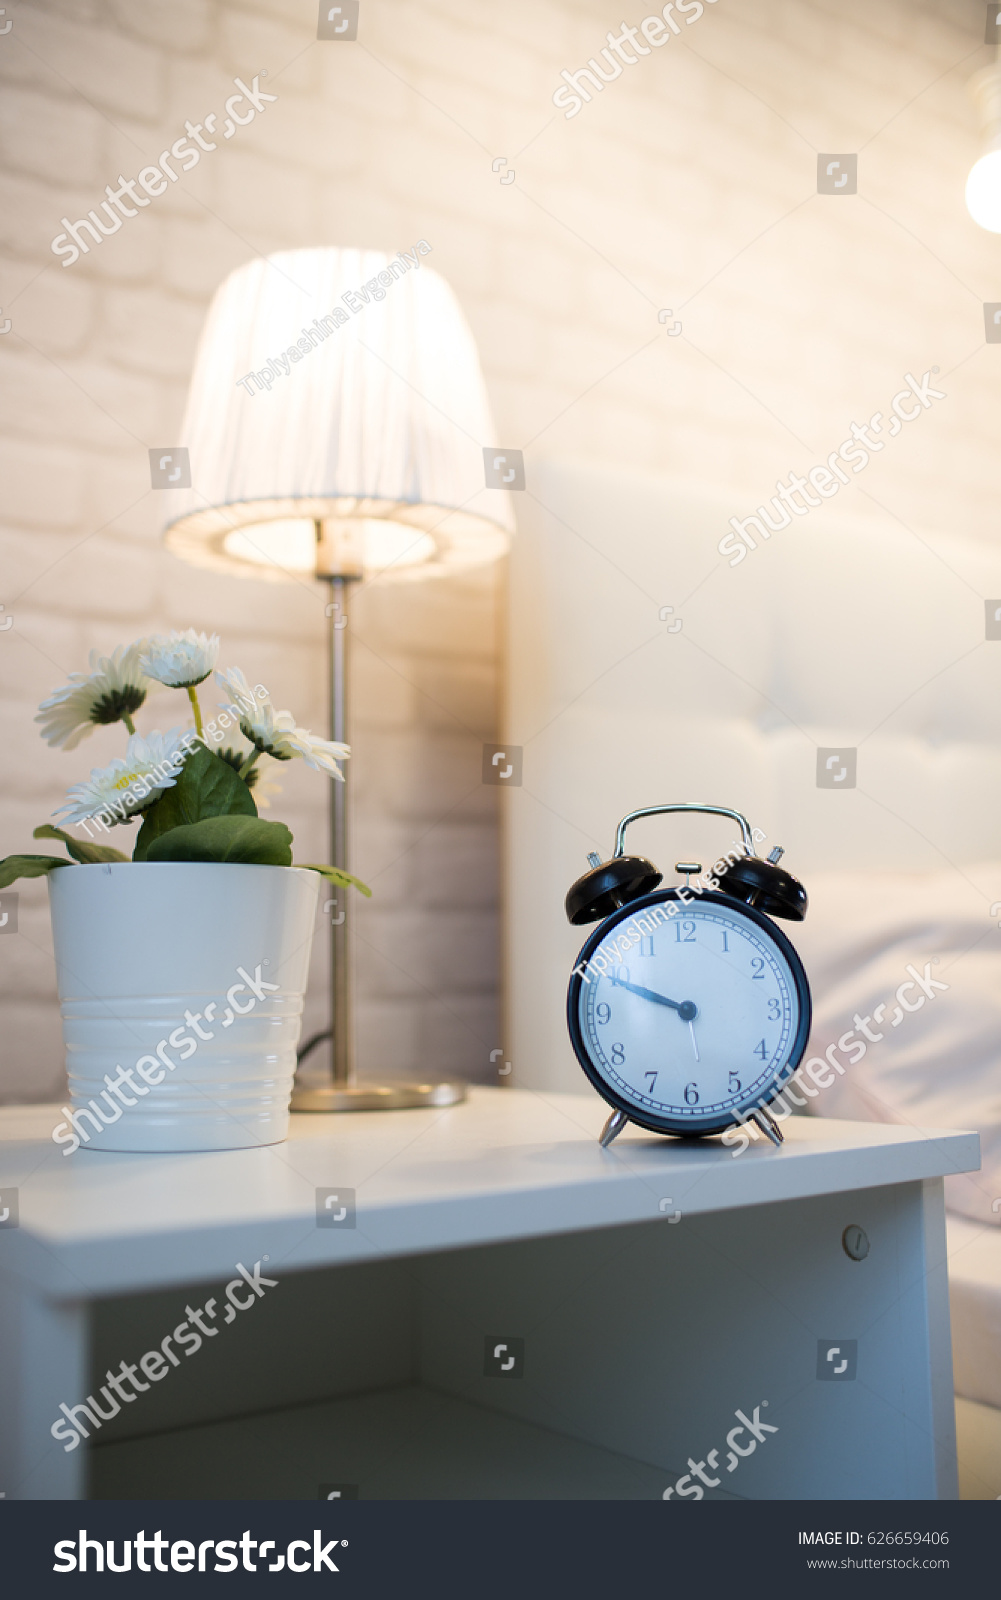 Best Alarm Bedside - stock-photo-alarm-clock-on-the-bedside-table-near-the-bed-626659406  Image_488322.jpg